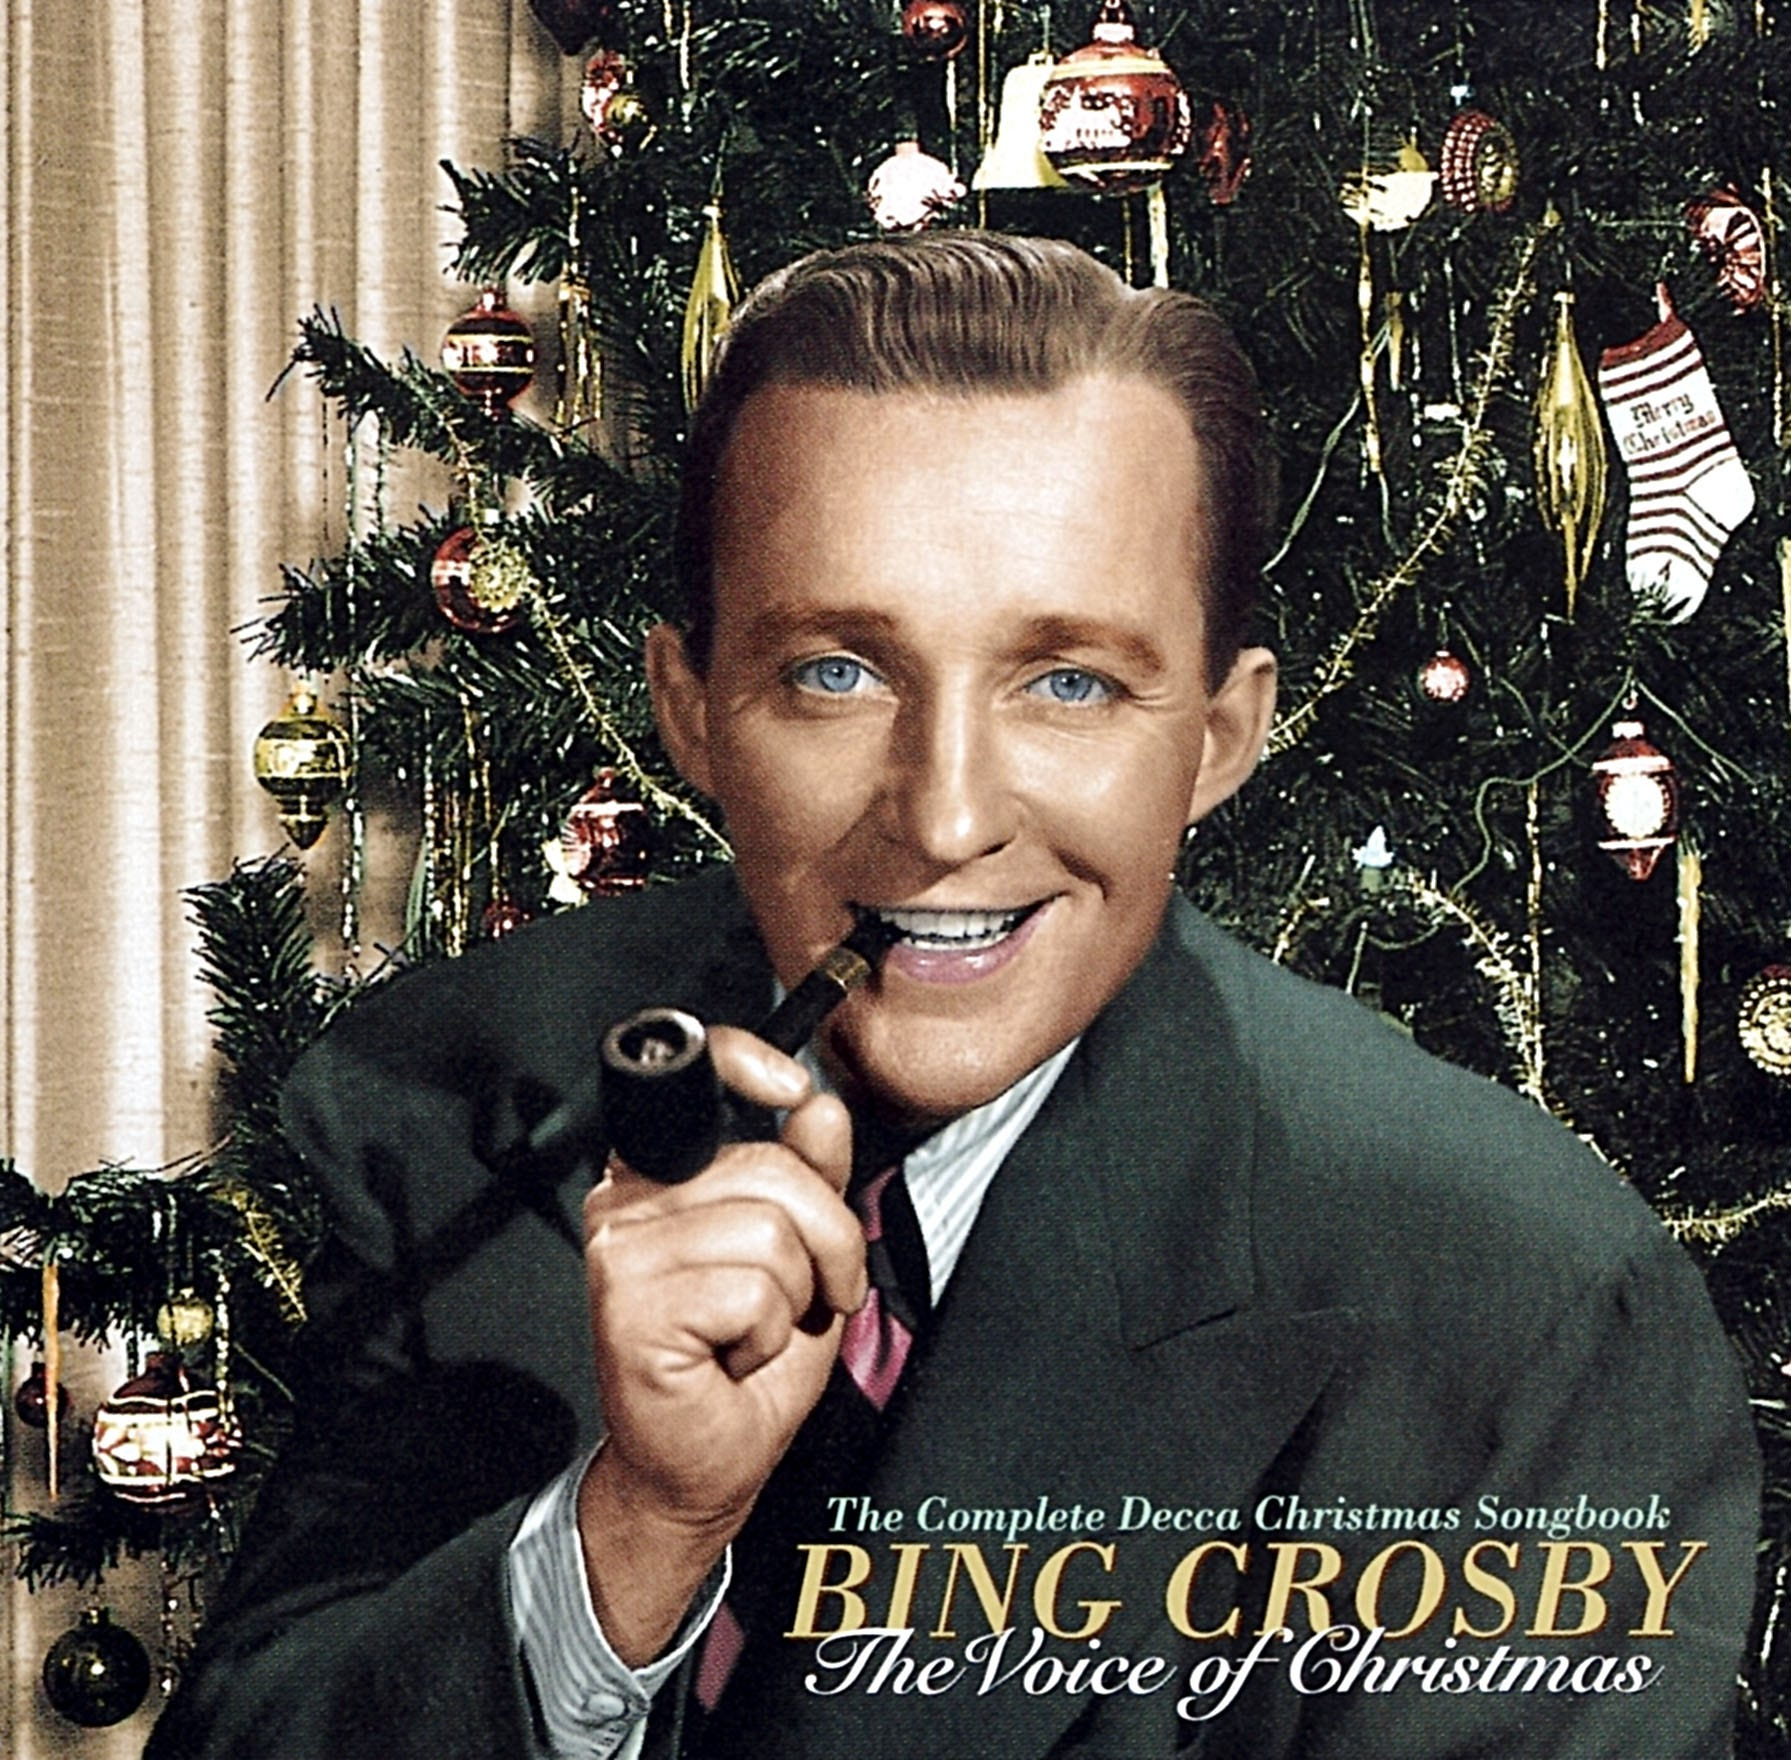 bing crosby white christmas lyricsbing crosby white christmas, bing crosby скачать, bing crosby jingle bells, bing crosby слушать, bing crosby white christmas mp3, bing crosby - swinging on a star, bing crosby mele kalikimaka скачать, bing crosby play a simple melody, bing crosby & the andrews sisters, bing crosby discography, bing crosby mp3, bing crosby ac-cent-tchu-ate the positive, bing crosby david bowie, bing crosby christmas album, bing crosby when i lost my baby, bing crosby seasons, bing crosby silent night, bing crosby white christmas lyrics, bing crosby - mele kalikimaka, bing crosby way back home